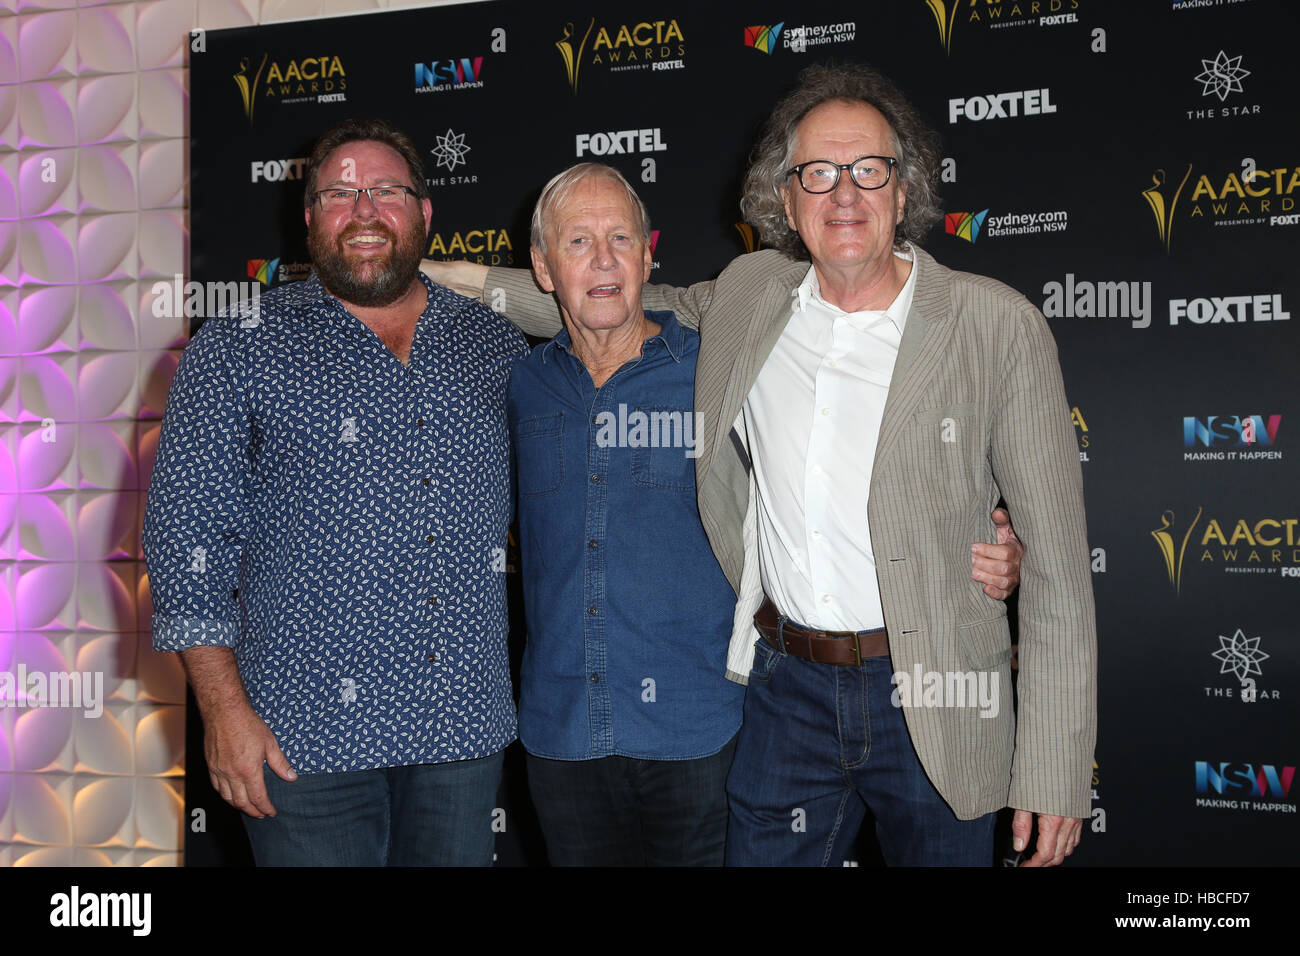 Sydney, Australia. 6th December, 2016. Australian actor Paul Hogan, known for the Crocodile Dundee movies as announced - Stock Image